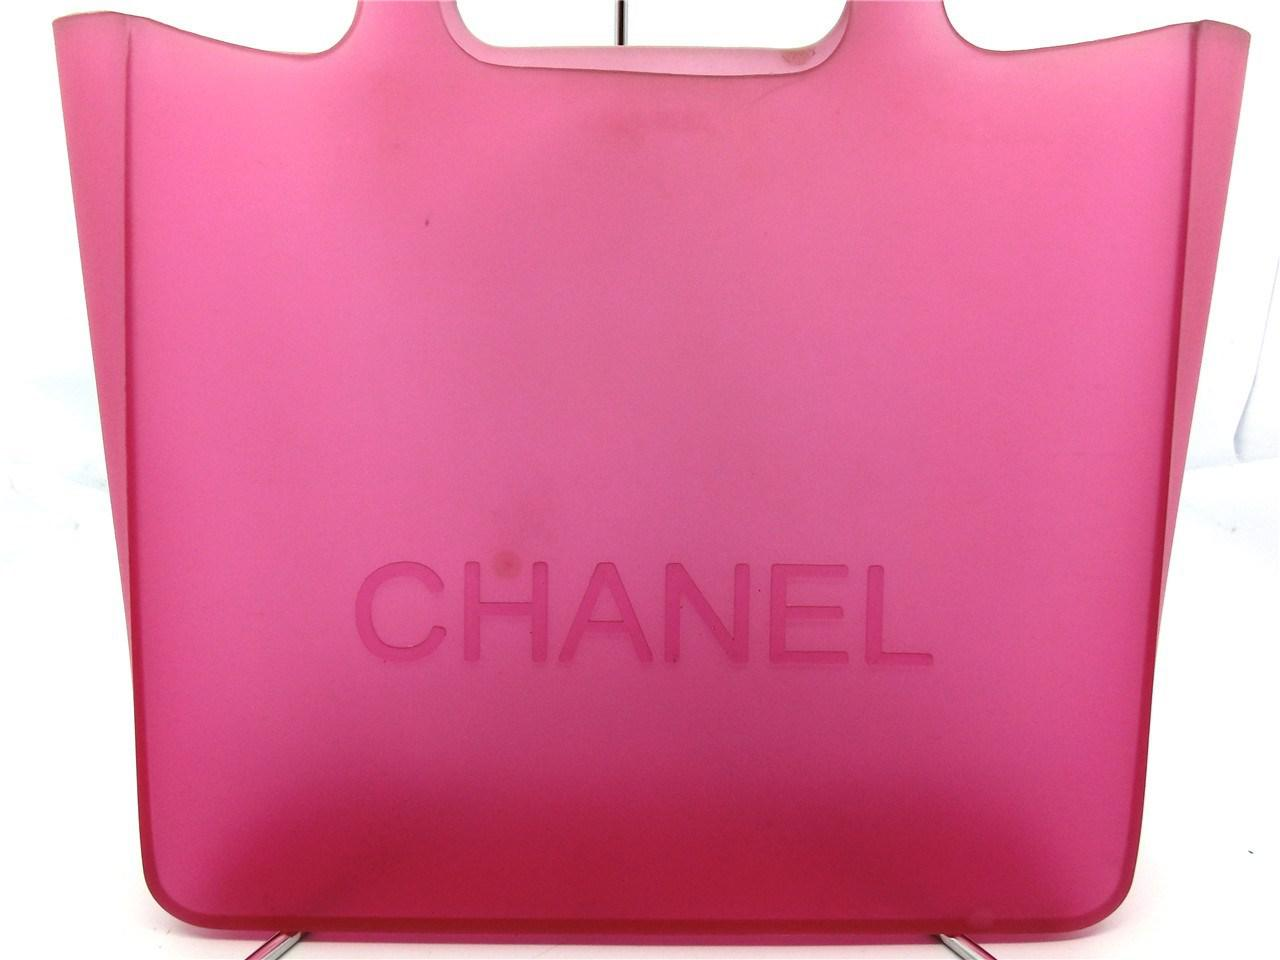 581f95bedf47c1 Chanel Authentic Pink Jelly Rubber Cc Logo Shopper Tote Bag ...